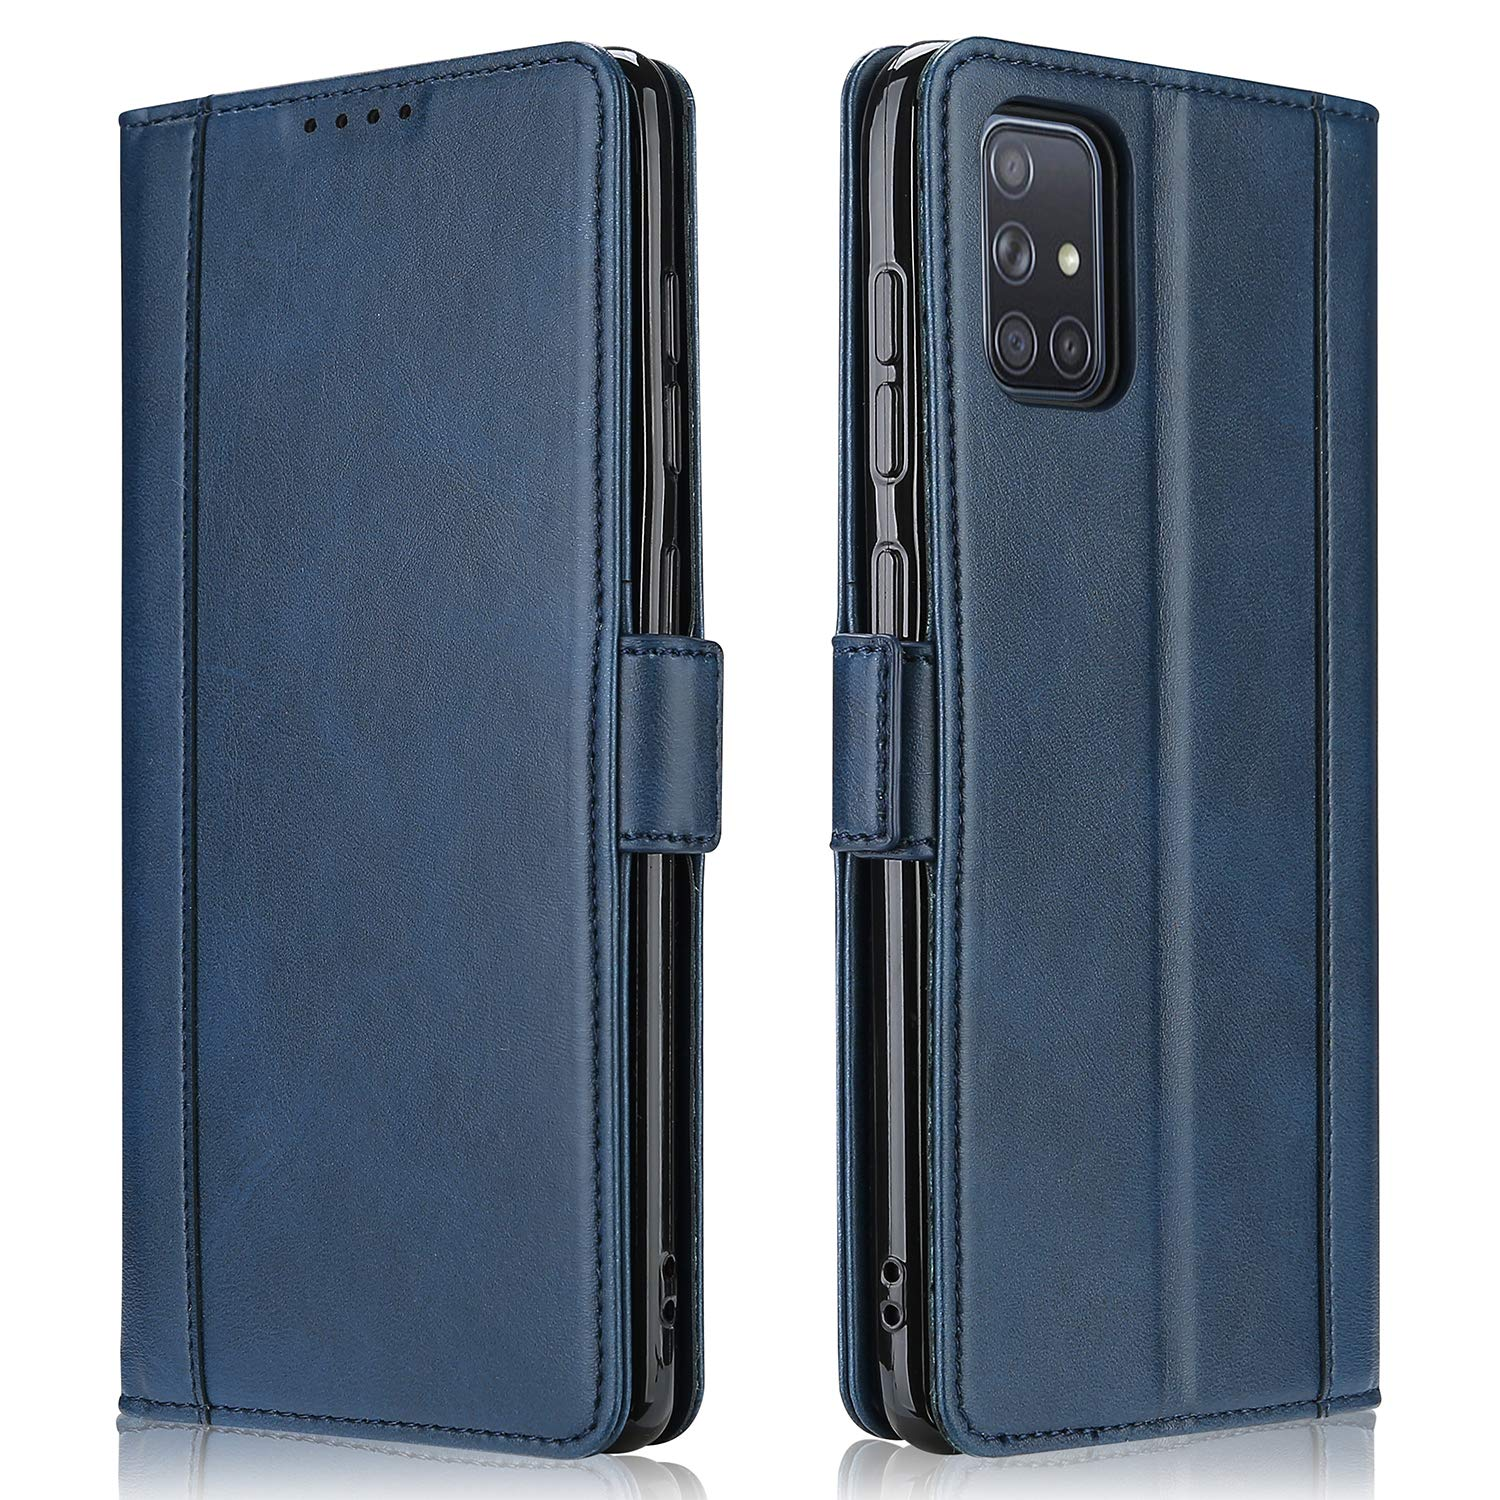 Amazon.com: ProCase Galaxy A51 Case 2020, Vintage Wallet Foldable Magnetic Protective Cover with Card Holders and Kickstand for Galaxy A51 (SM-A515F/DS) -Navy: Electronics